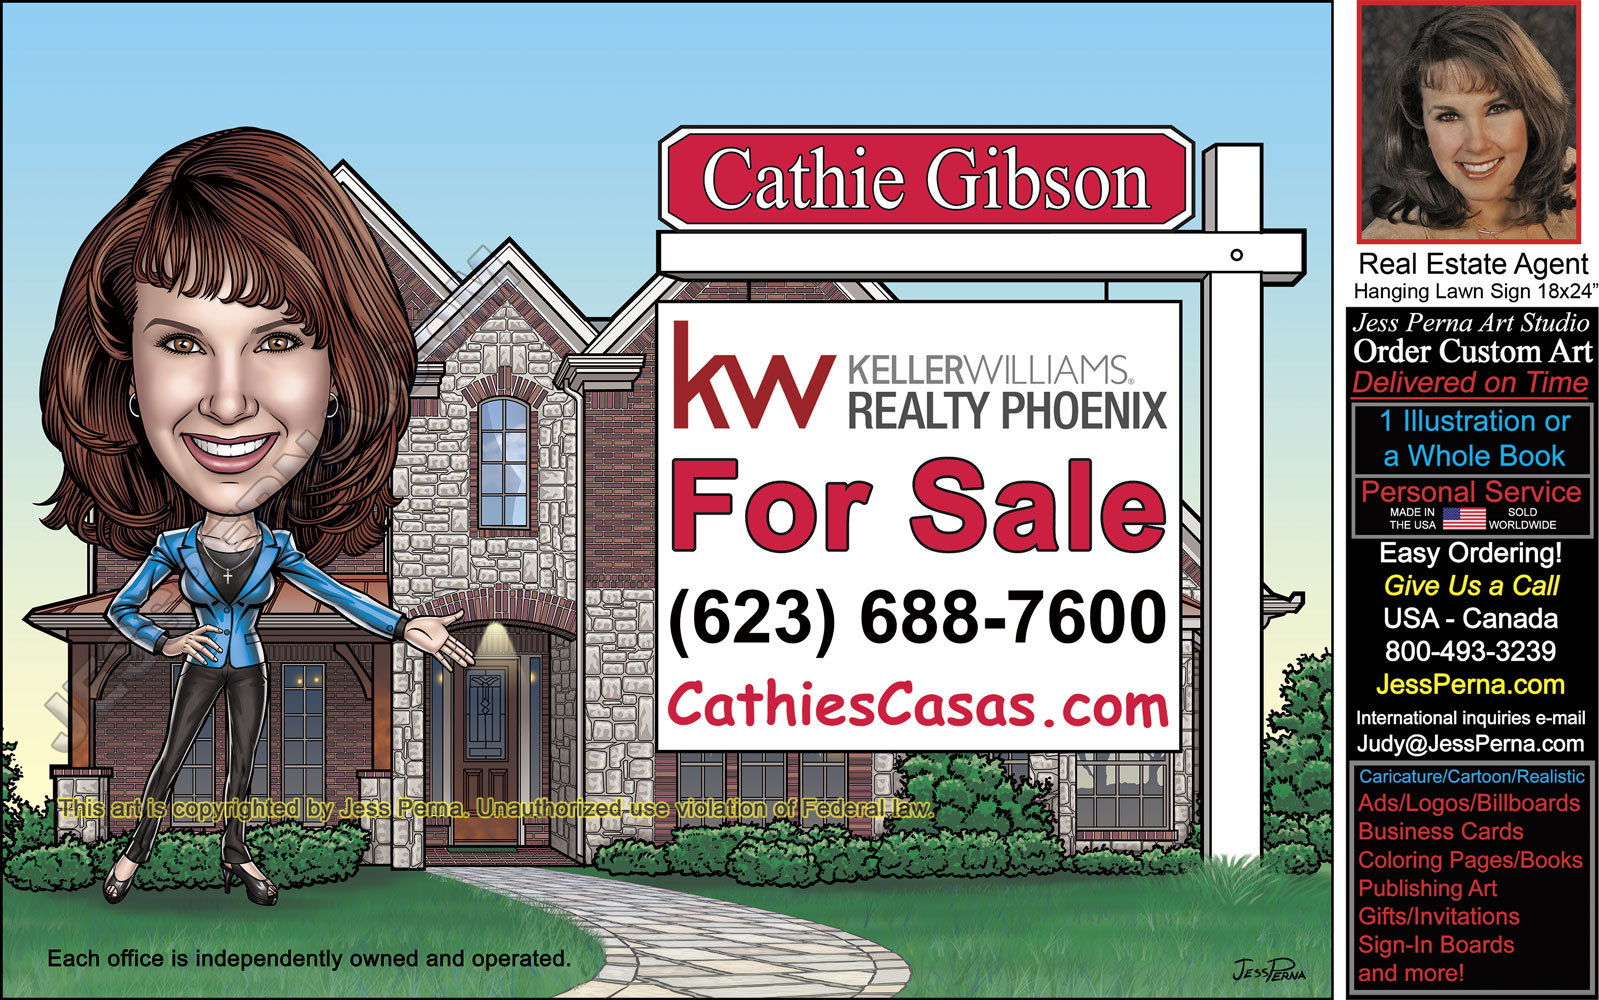 KW Real Estate Agent Ad